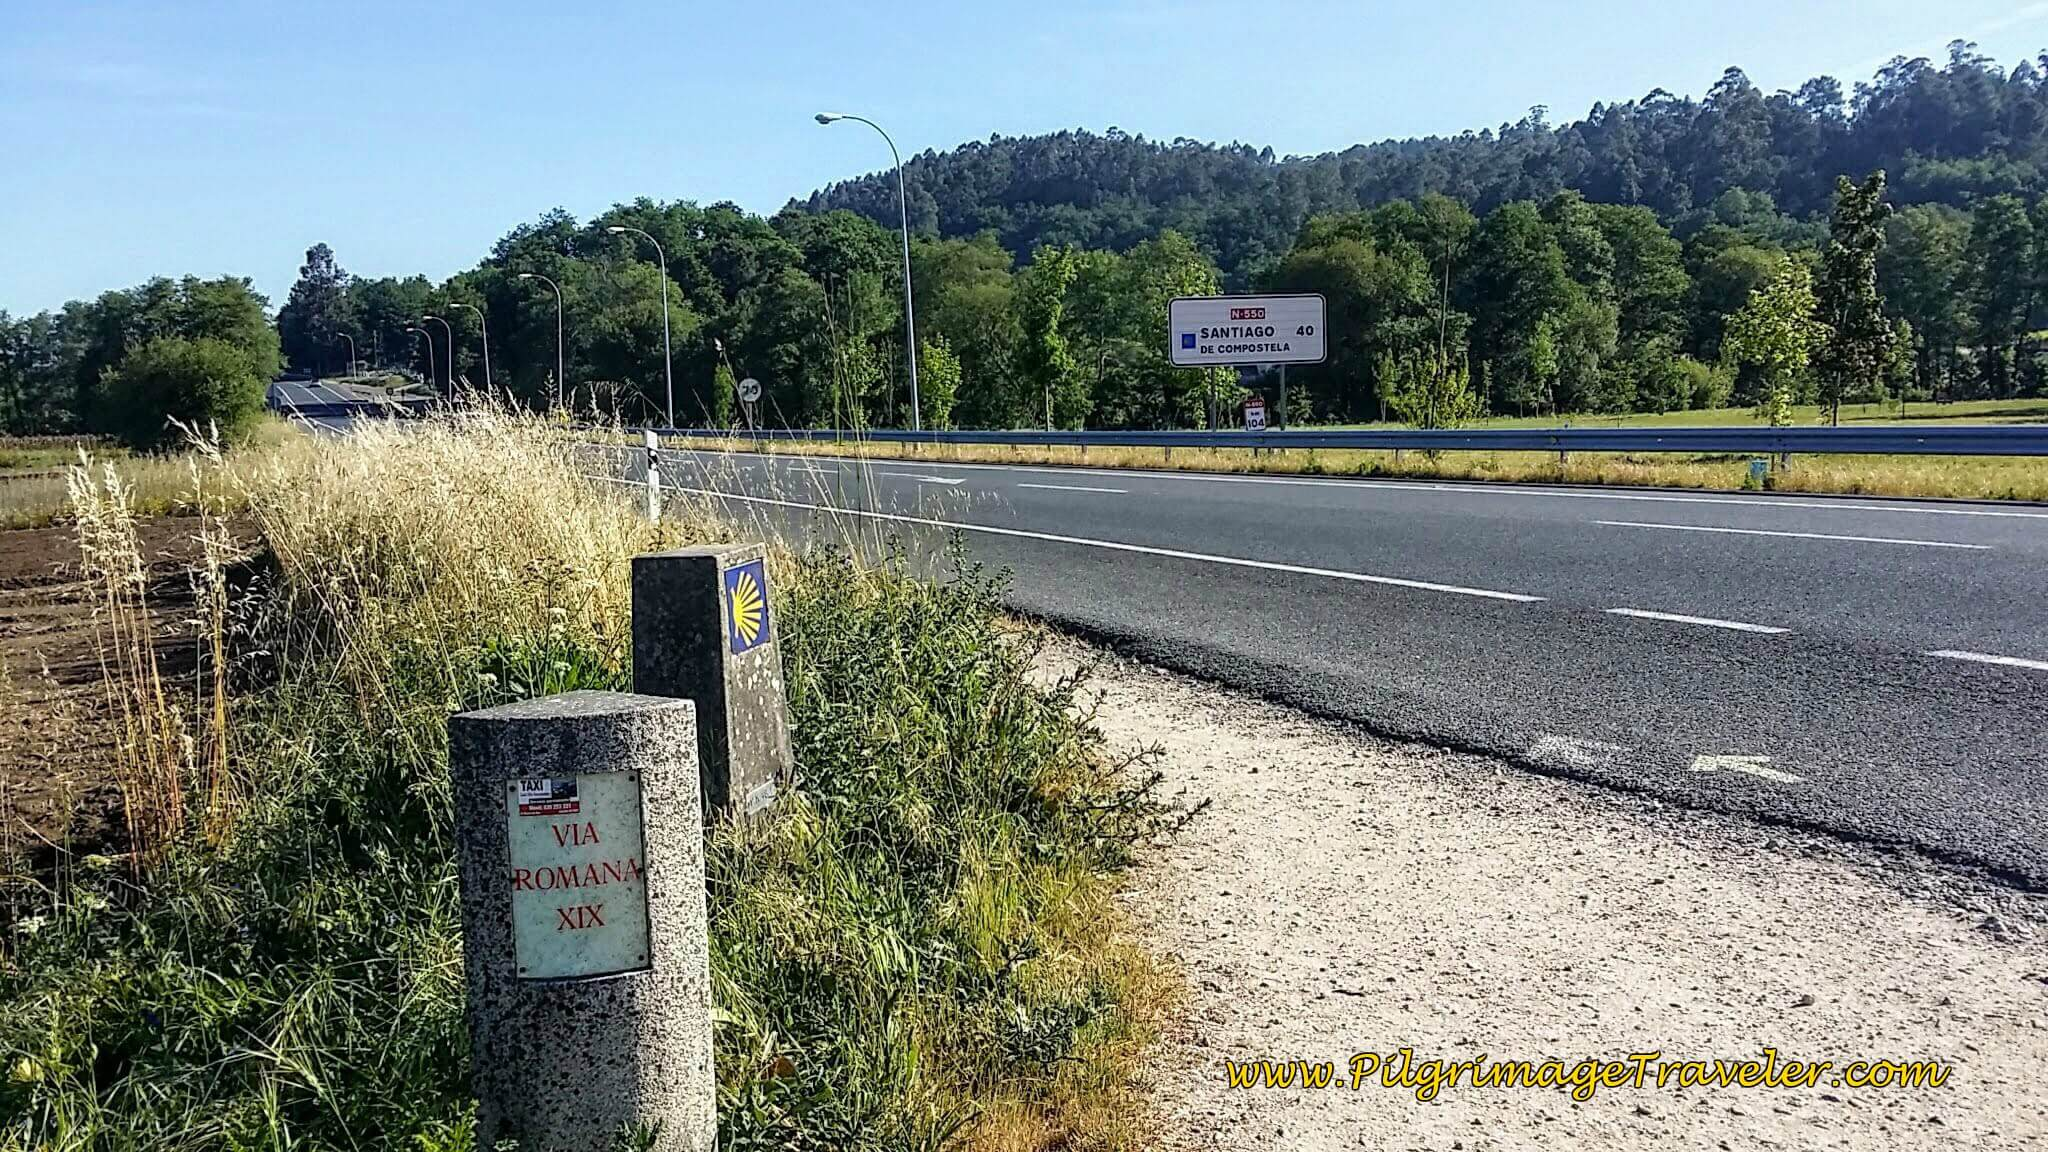 Join the N-550 Highway and Turn Left on day twenty-three, Camino Portugués